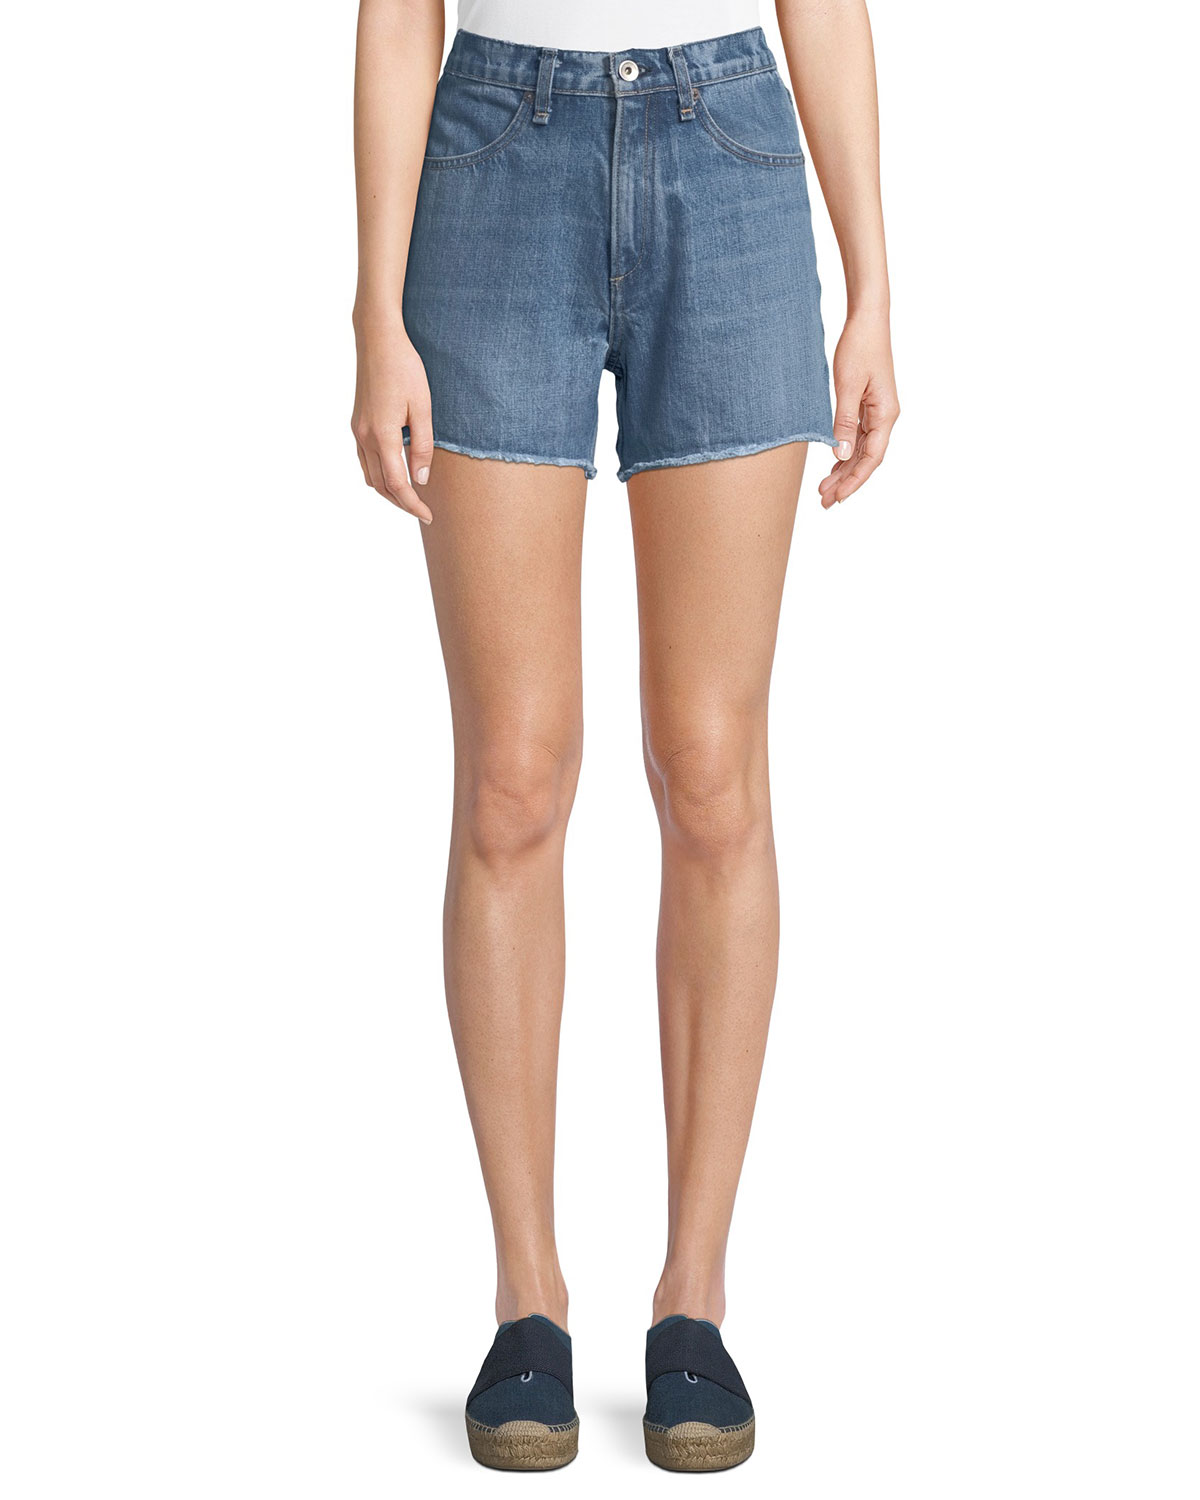 4e7e623d13 Rag & Bone Torti High-Rise Denim Shorts | Neiman Marcus